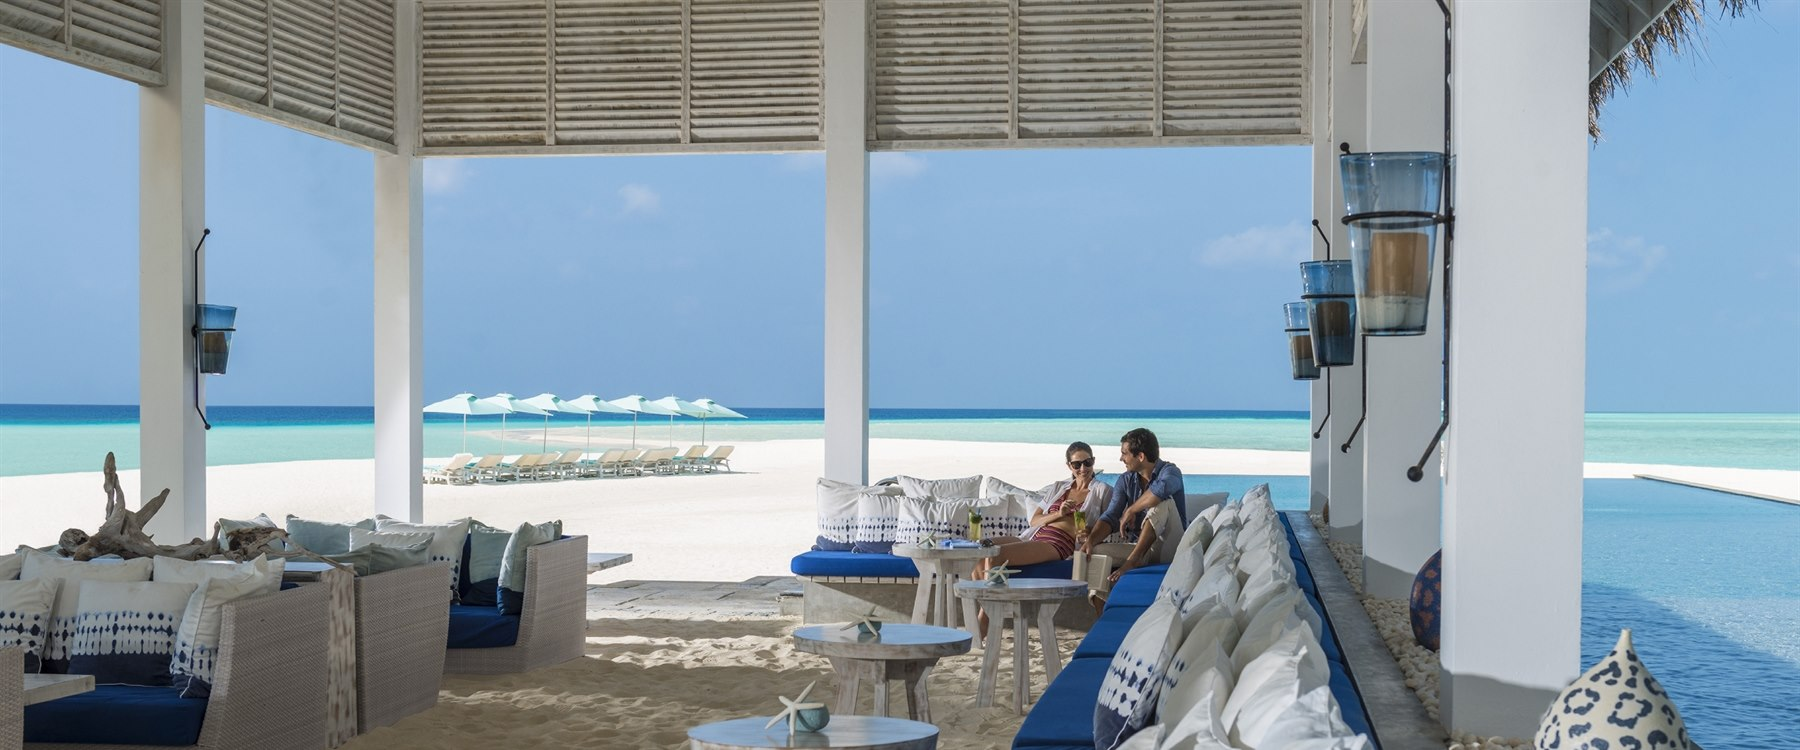 Blu Bar at Four Seasons Resort Maldives at Landaa Giraavaru